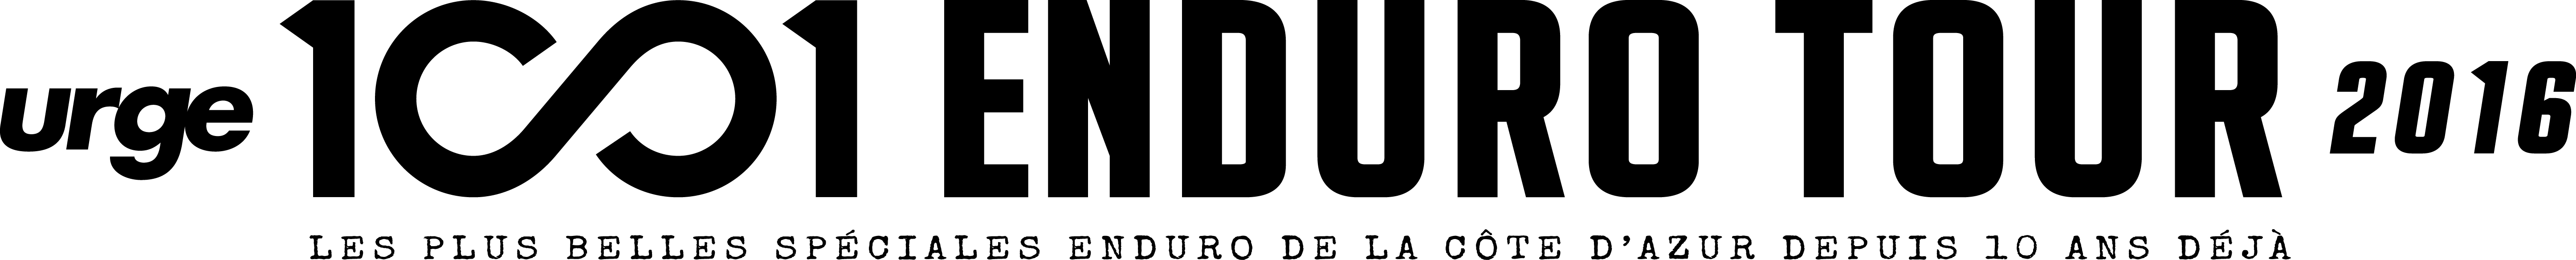 logo urge 1001 enduro tour 2016